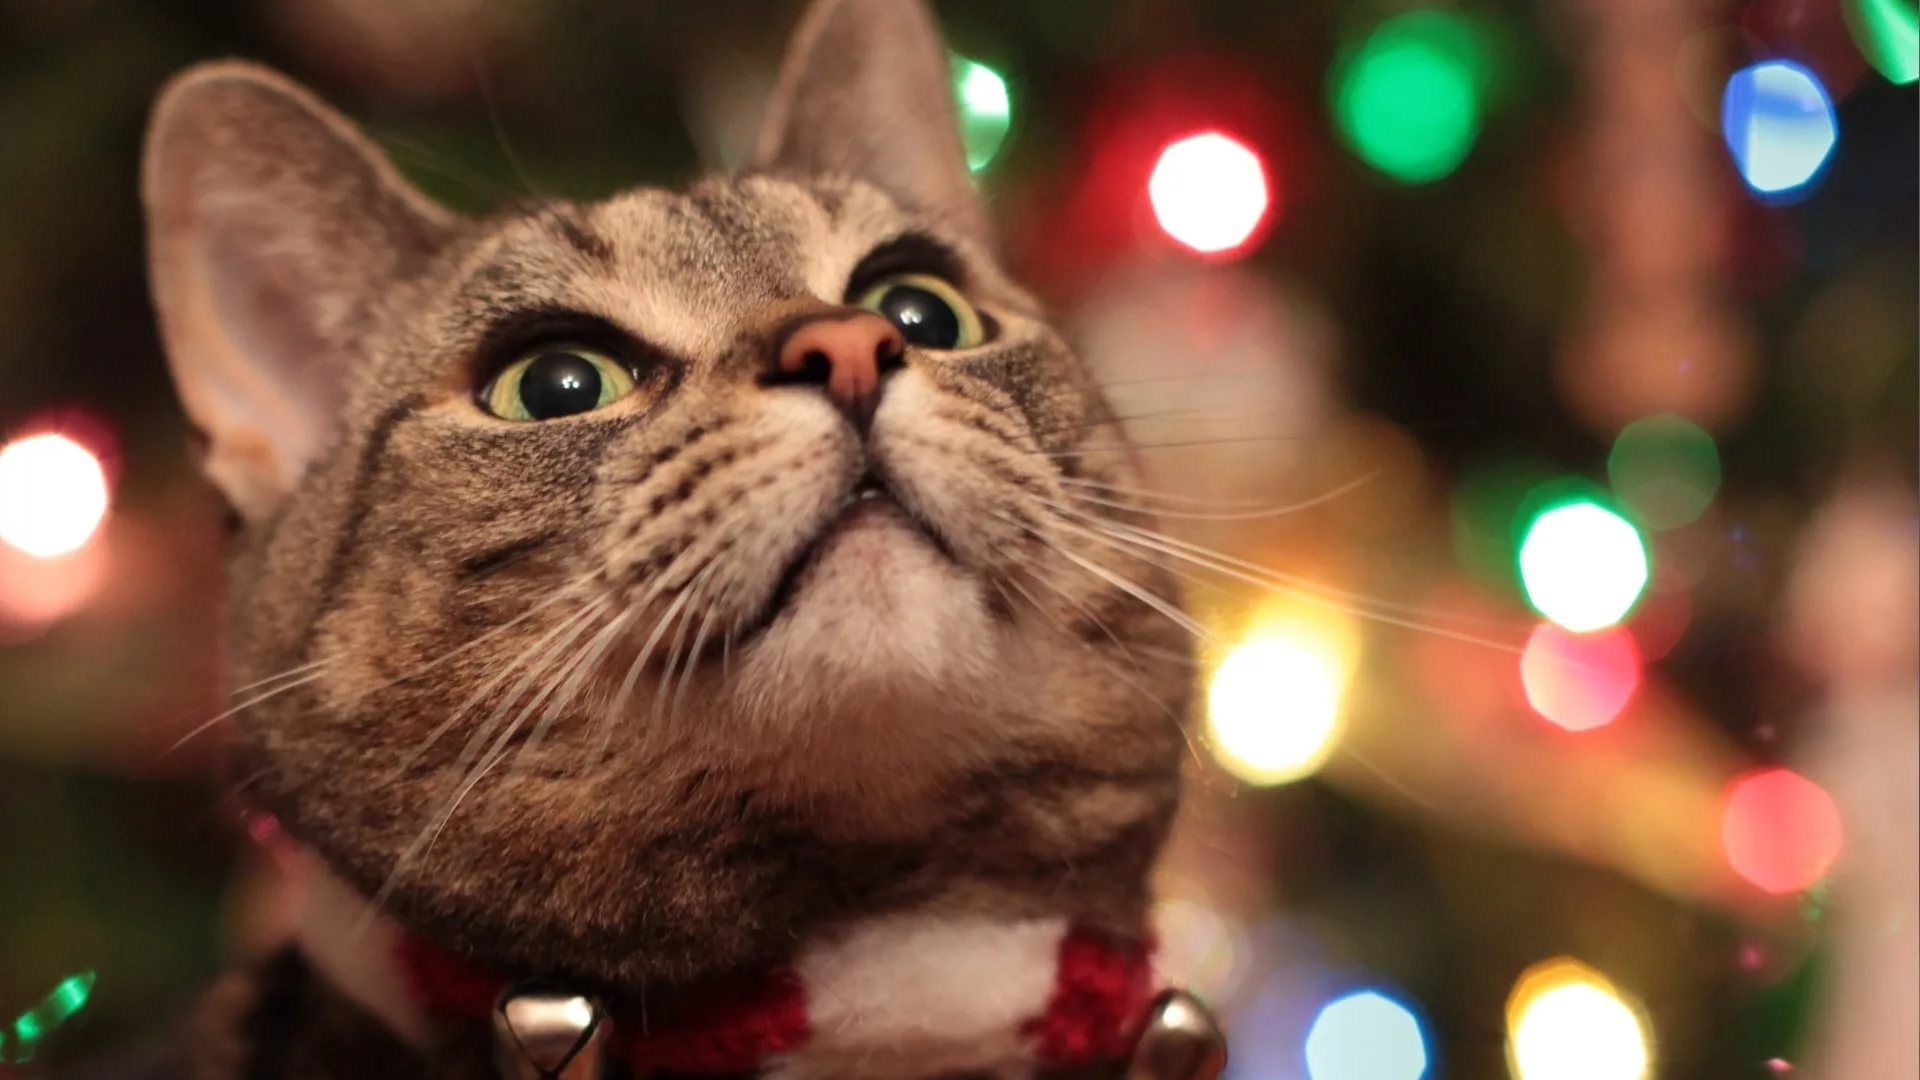 Christmas Cat download free wallpapers for pc in hd